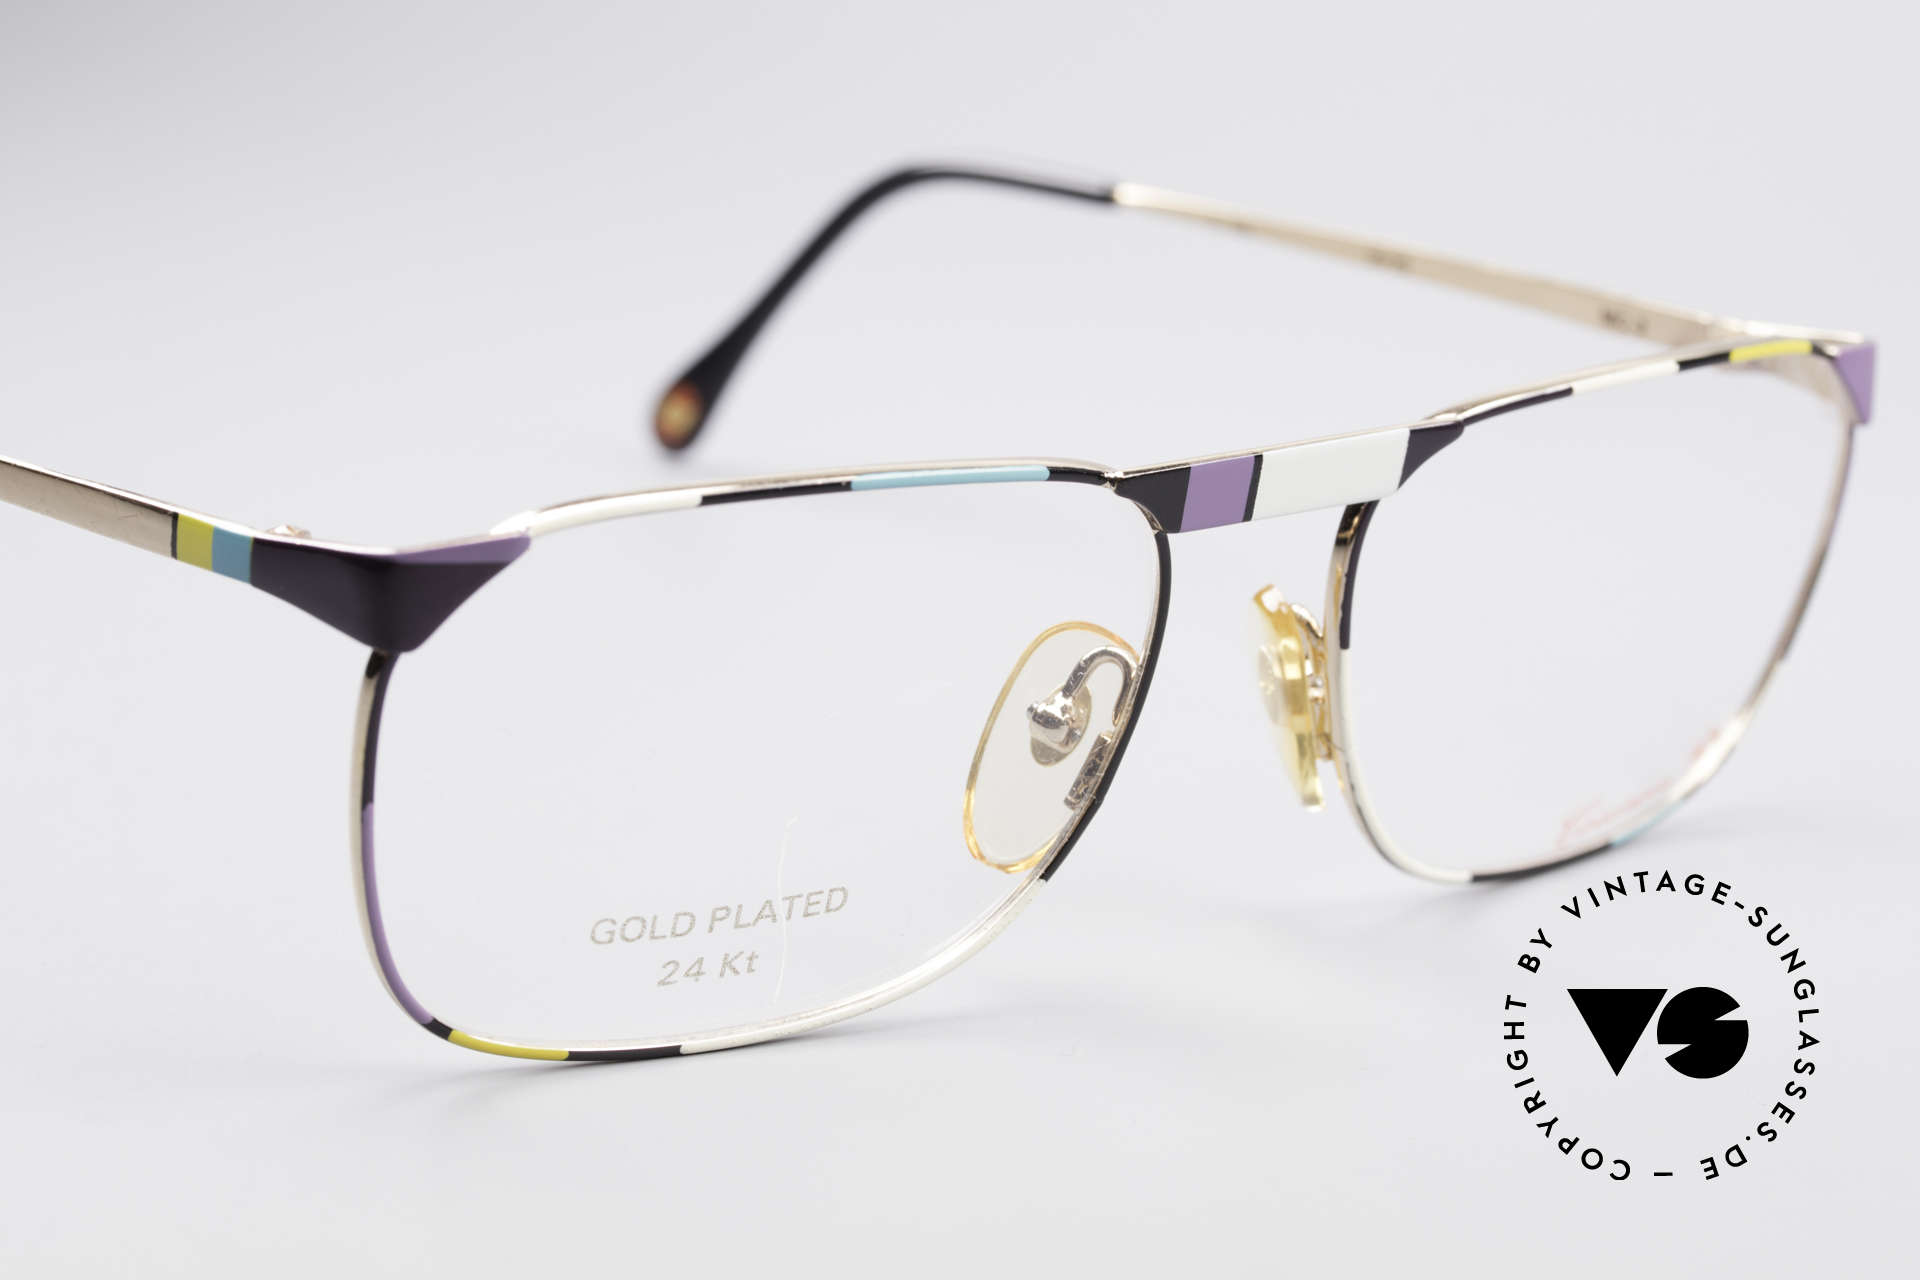 Casanova MC3 24KT Gold Plated Glasses, NO RETRO glasses, but a precious vintage original, Made for Men and Women